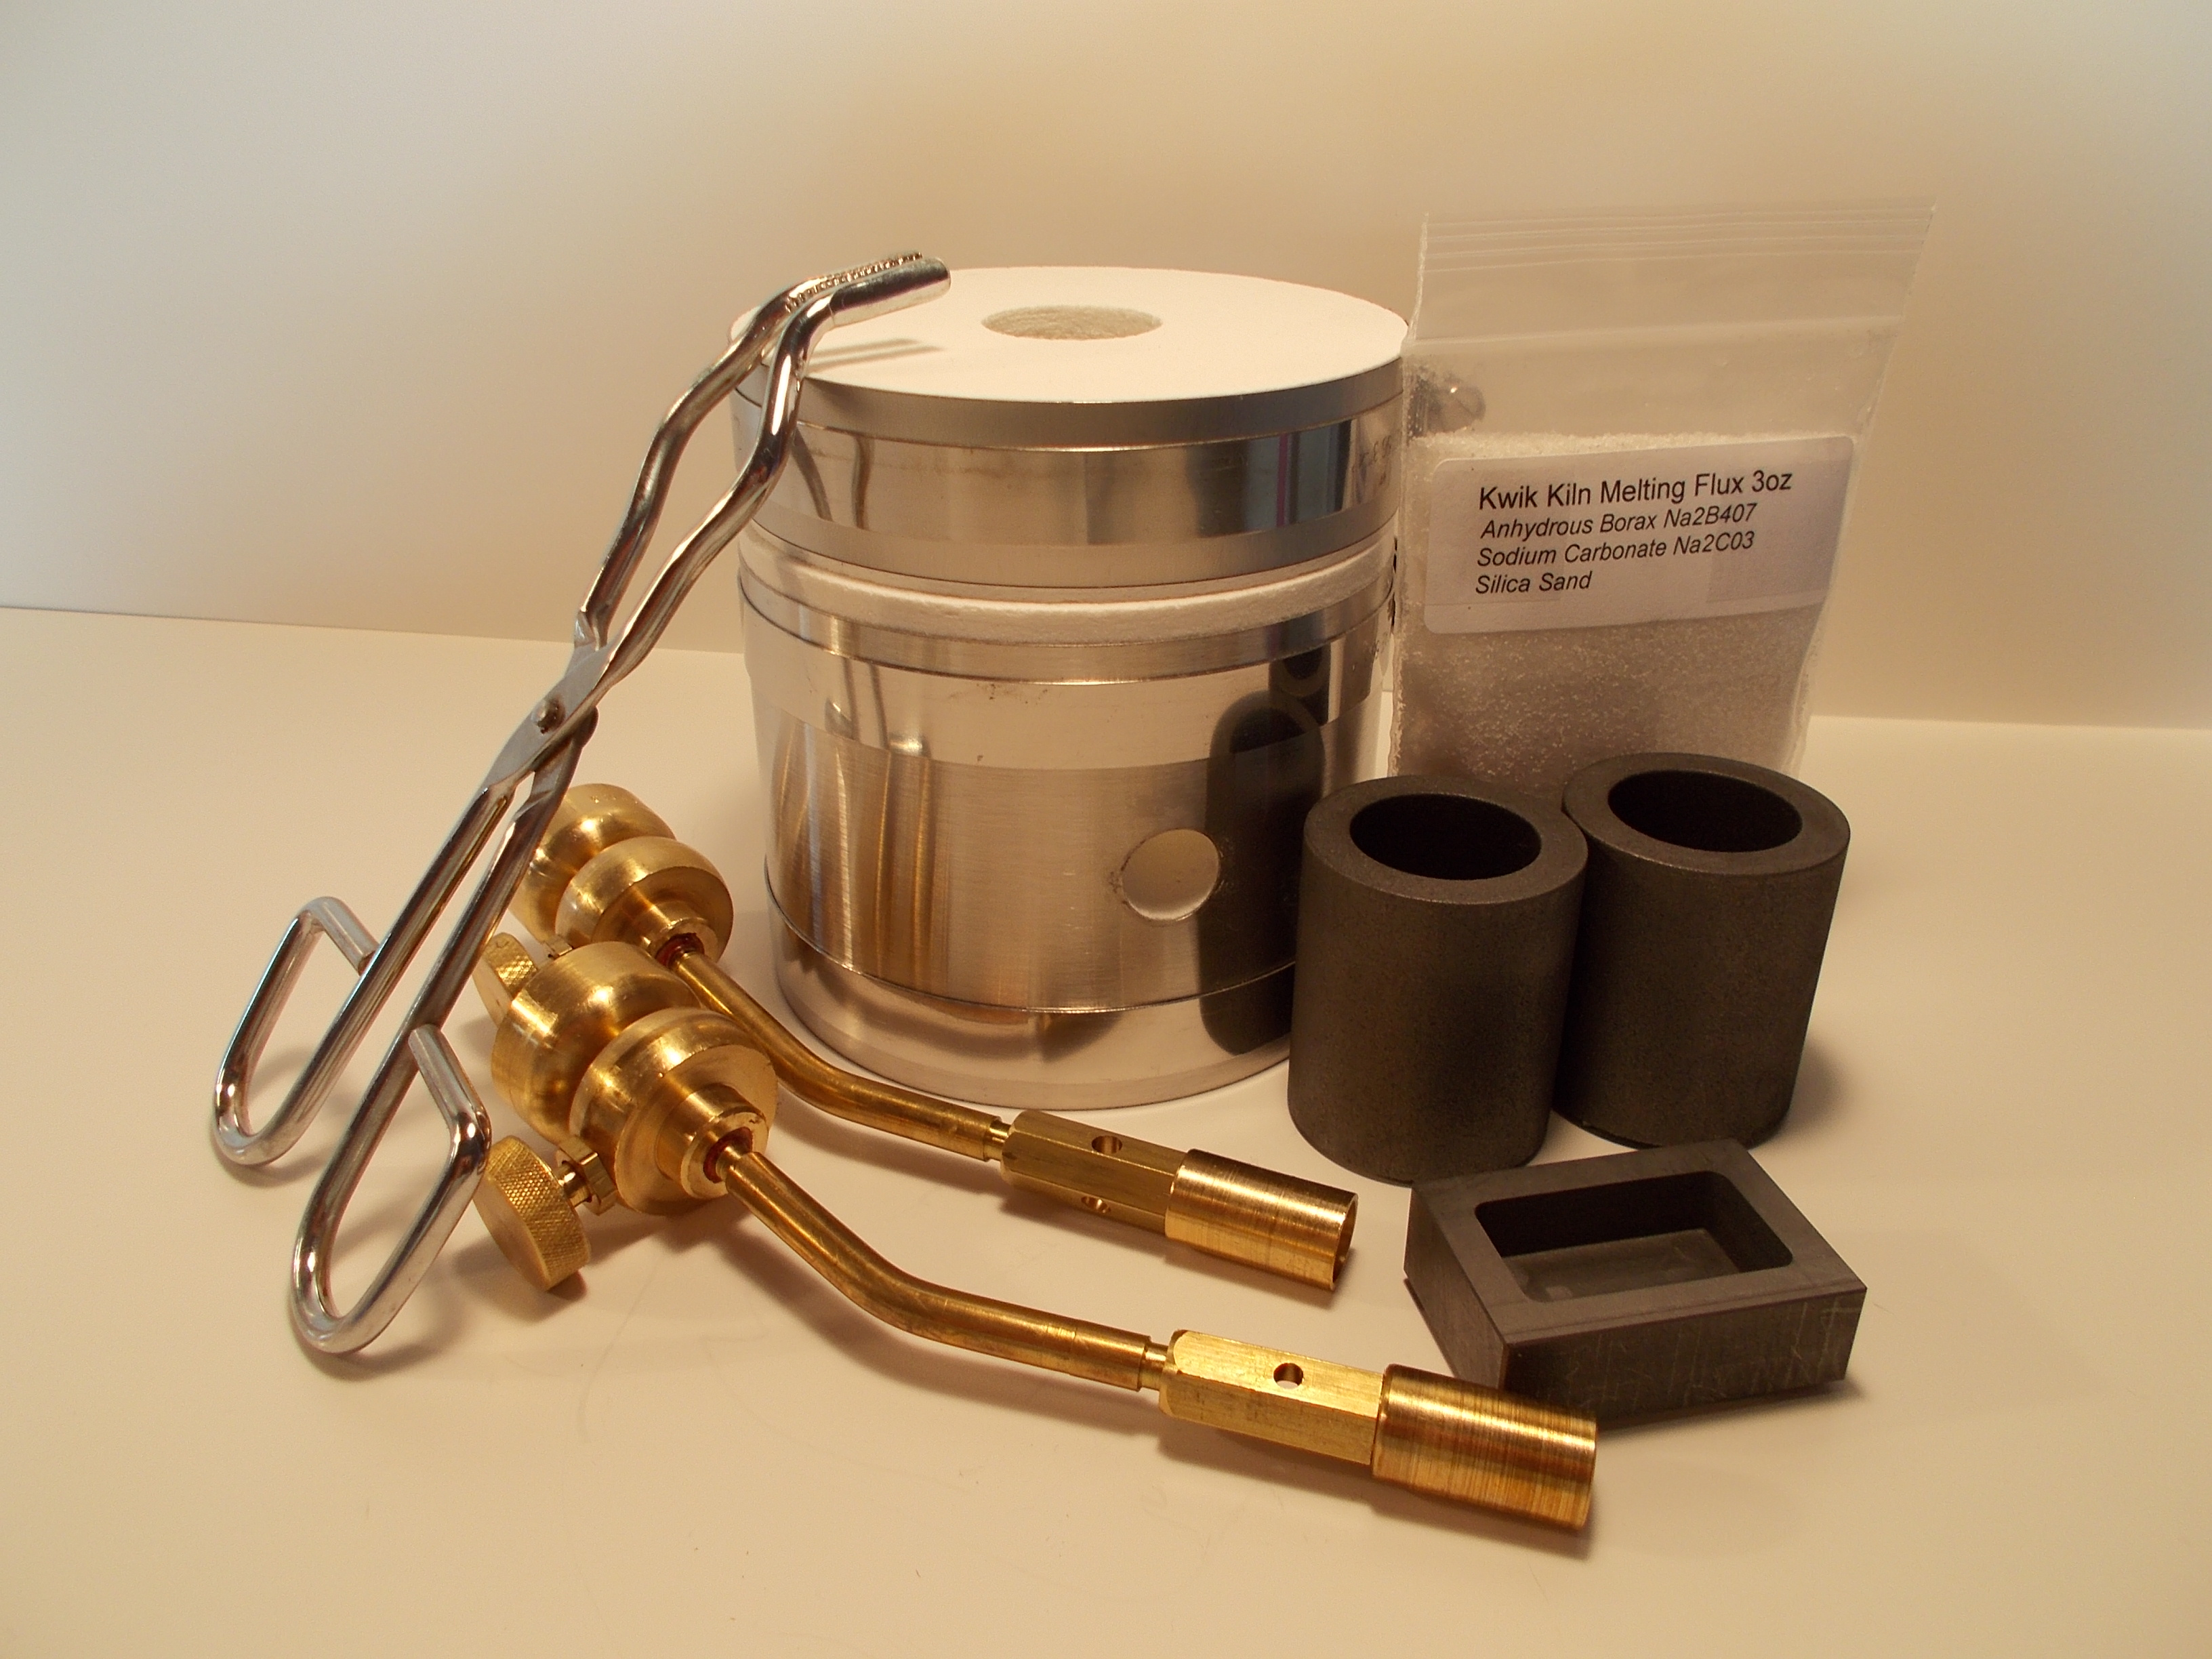 Deluxe Kwik Kiln Melting Kit With Torches Where Can I Buy Kwik